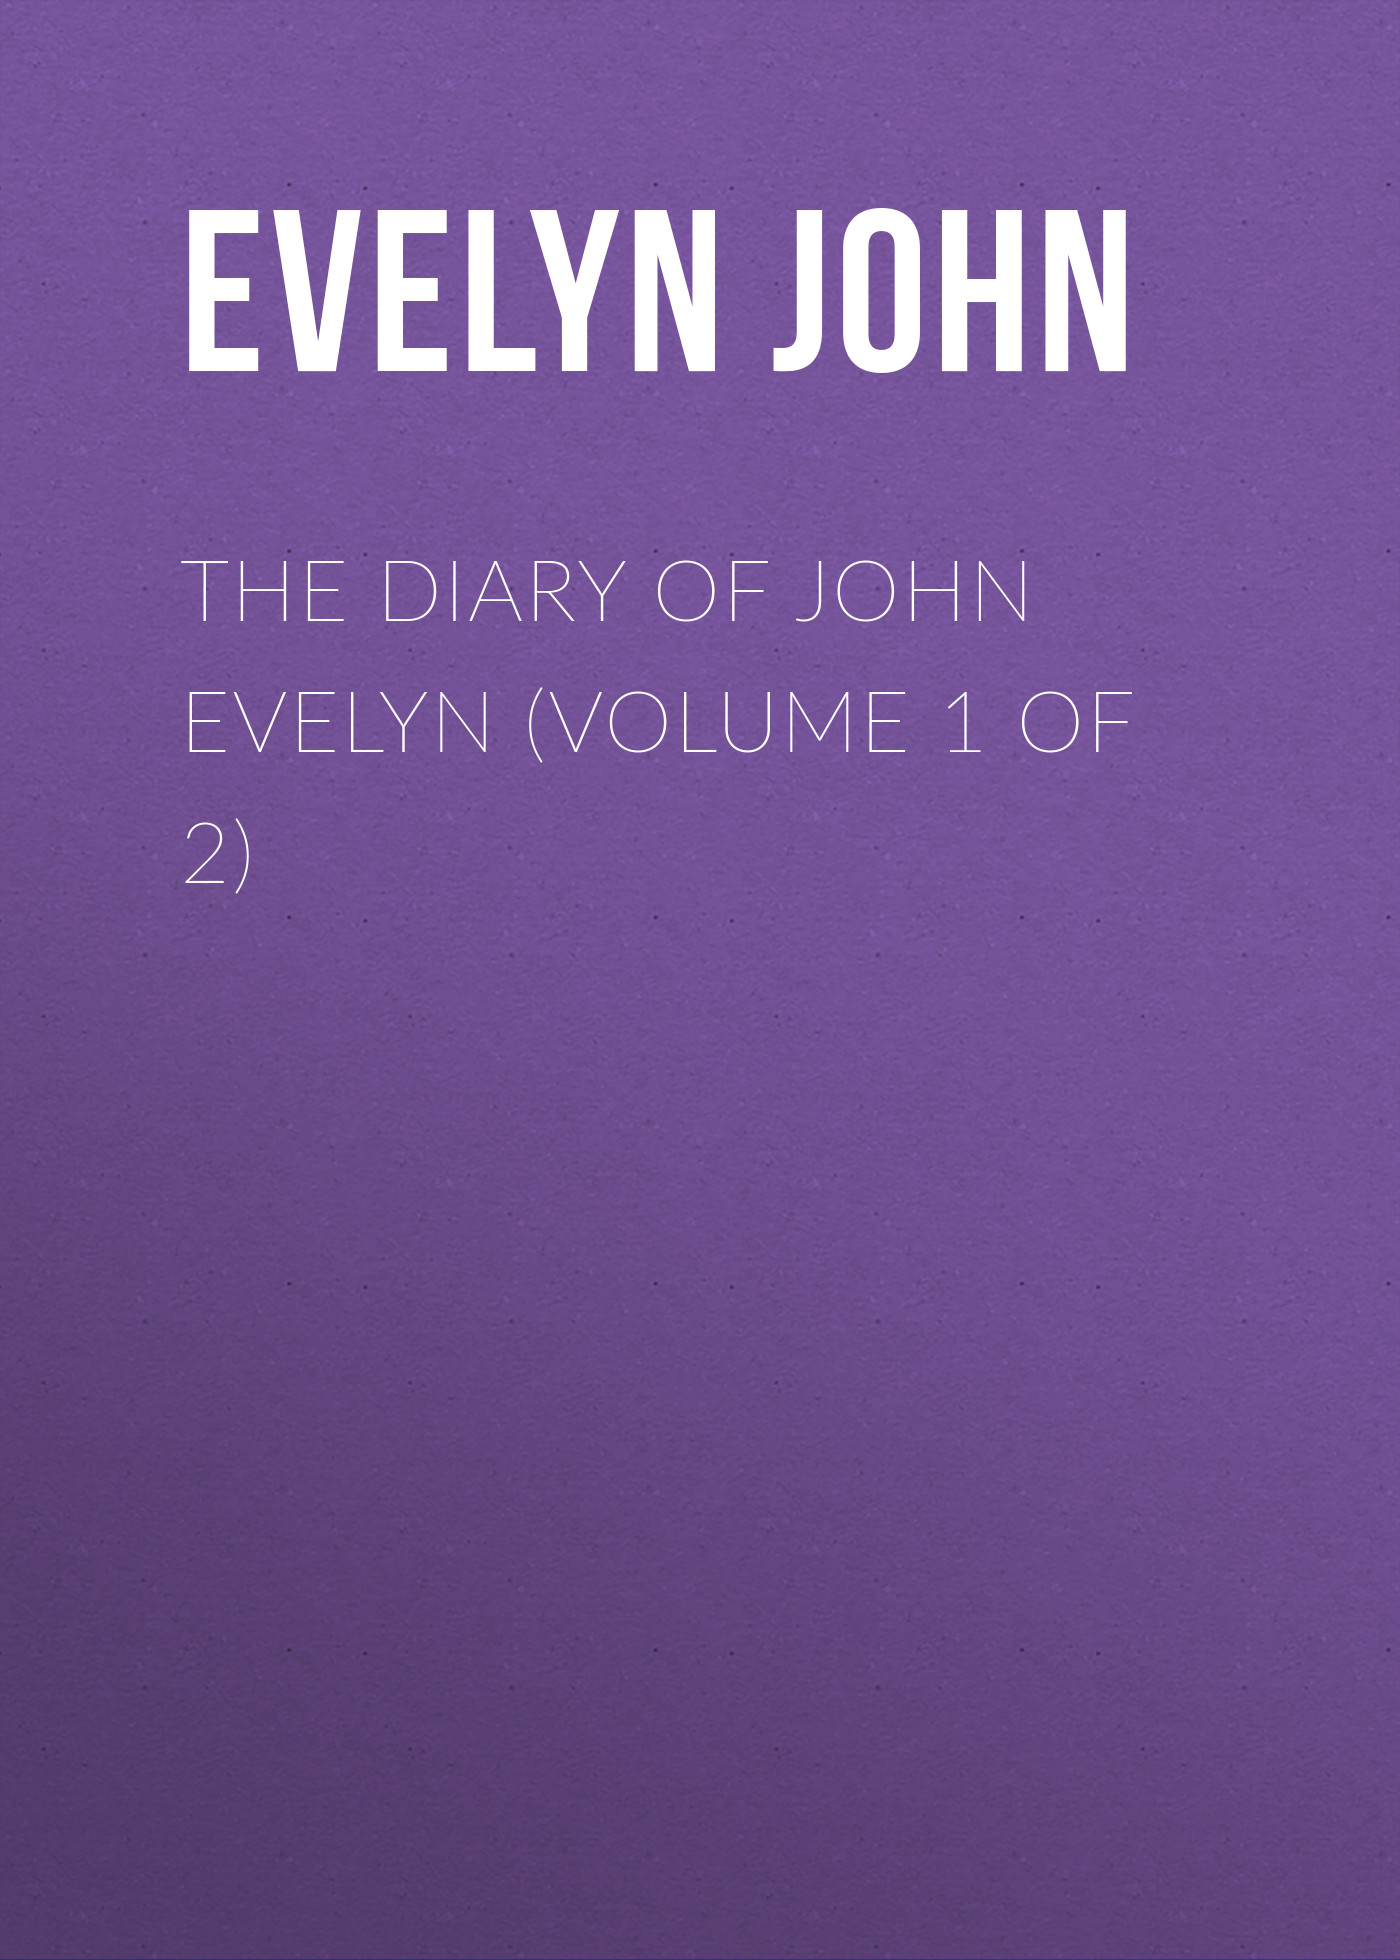 Evelyn John The Diary of John Evelyn (Volume 1 of 2)